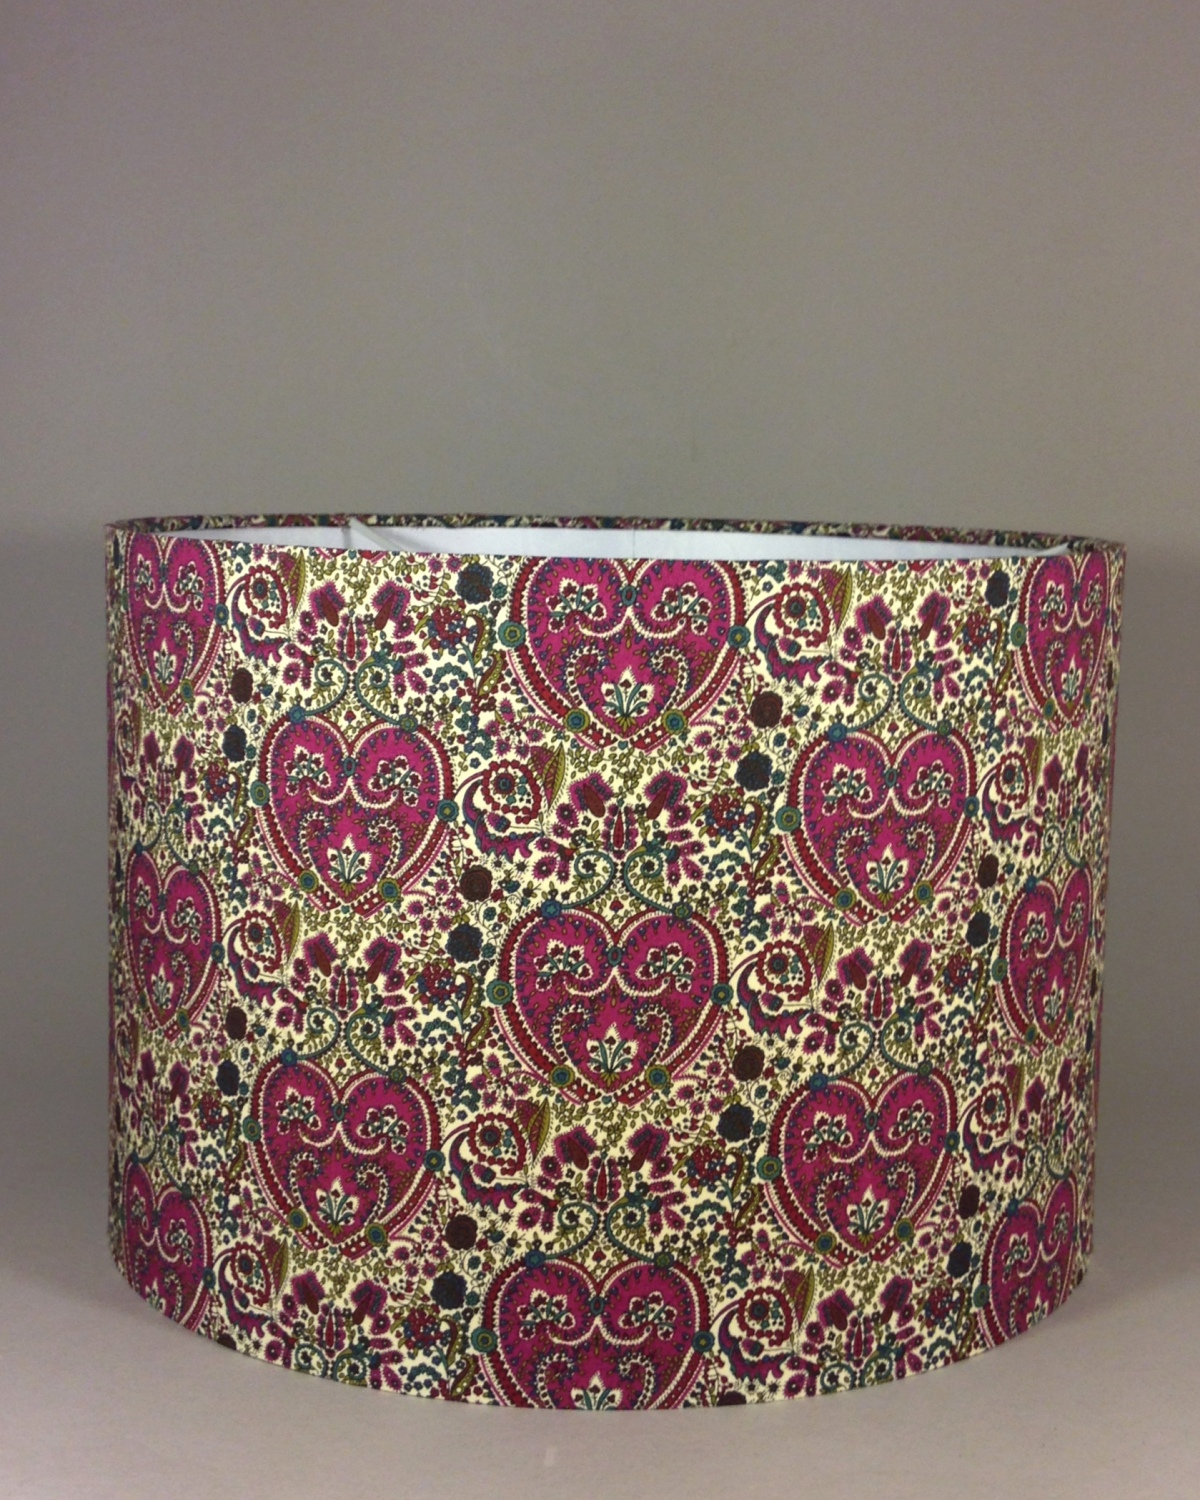 Bespoke lampshade made with Liberty 'Kitty Grace' fabric